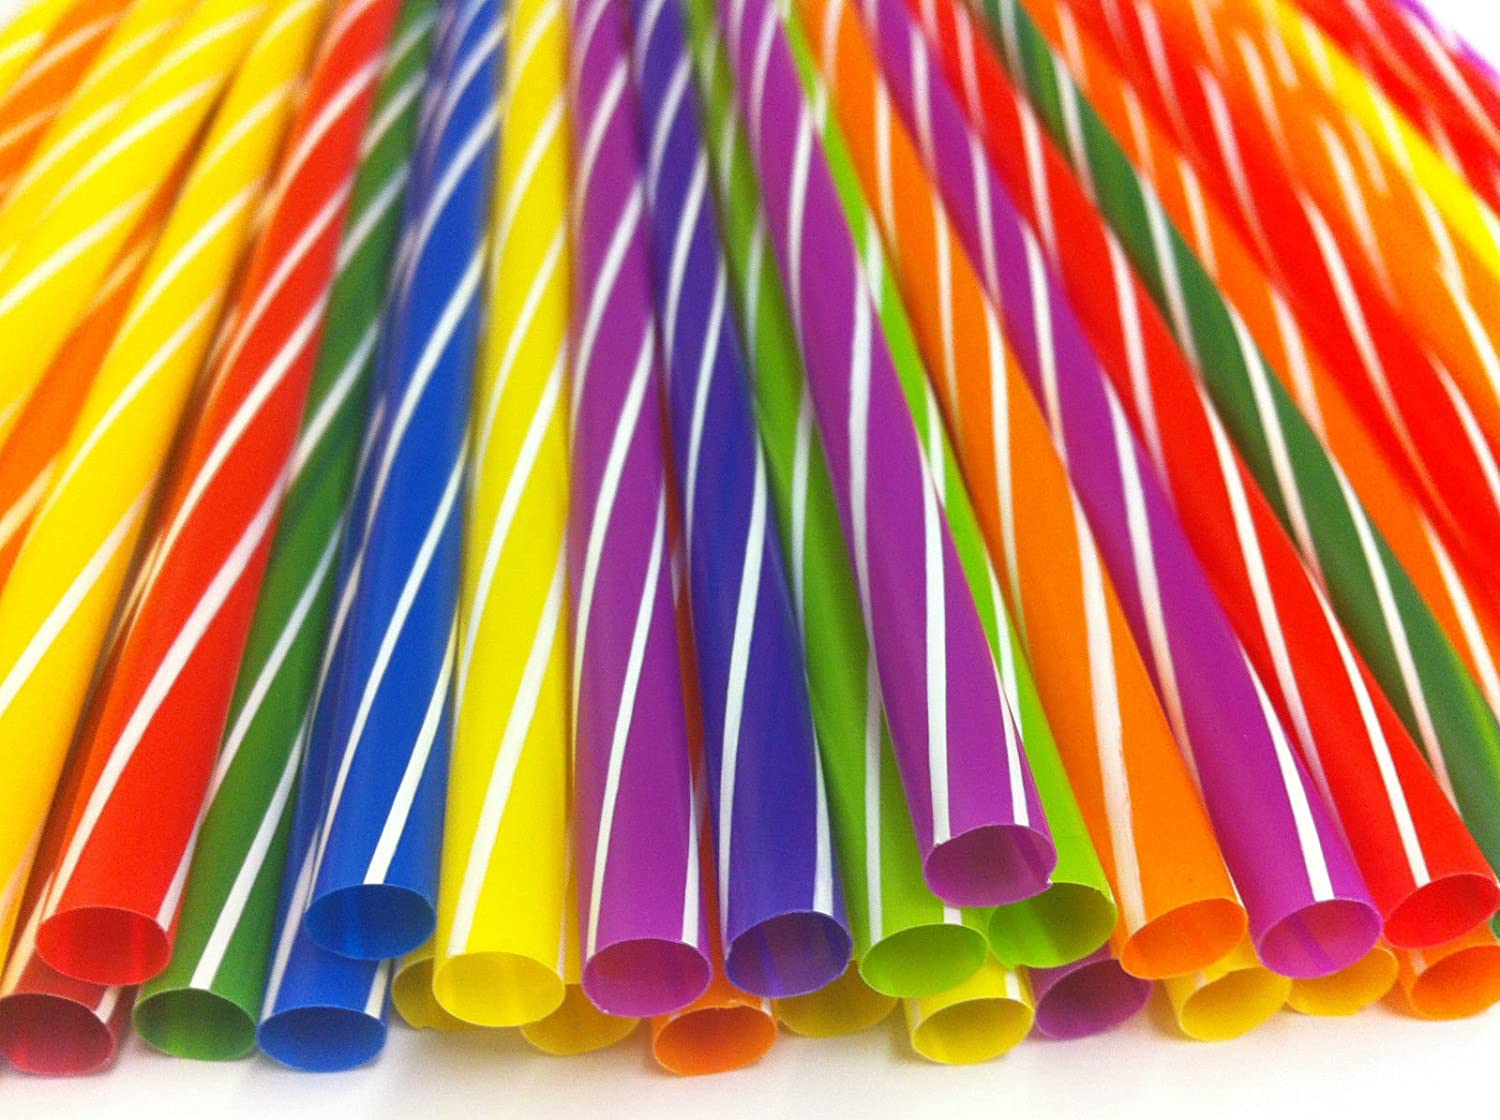 RAYANDIRECT 80 PCS MULTICOLOUR MILKSHAKE JUMBO SMOOTHIE THICK DRINK DRINKING STRAW PARTY BAR